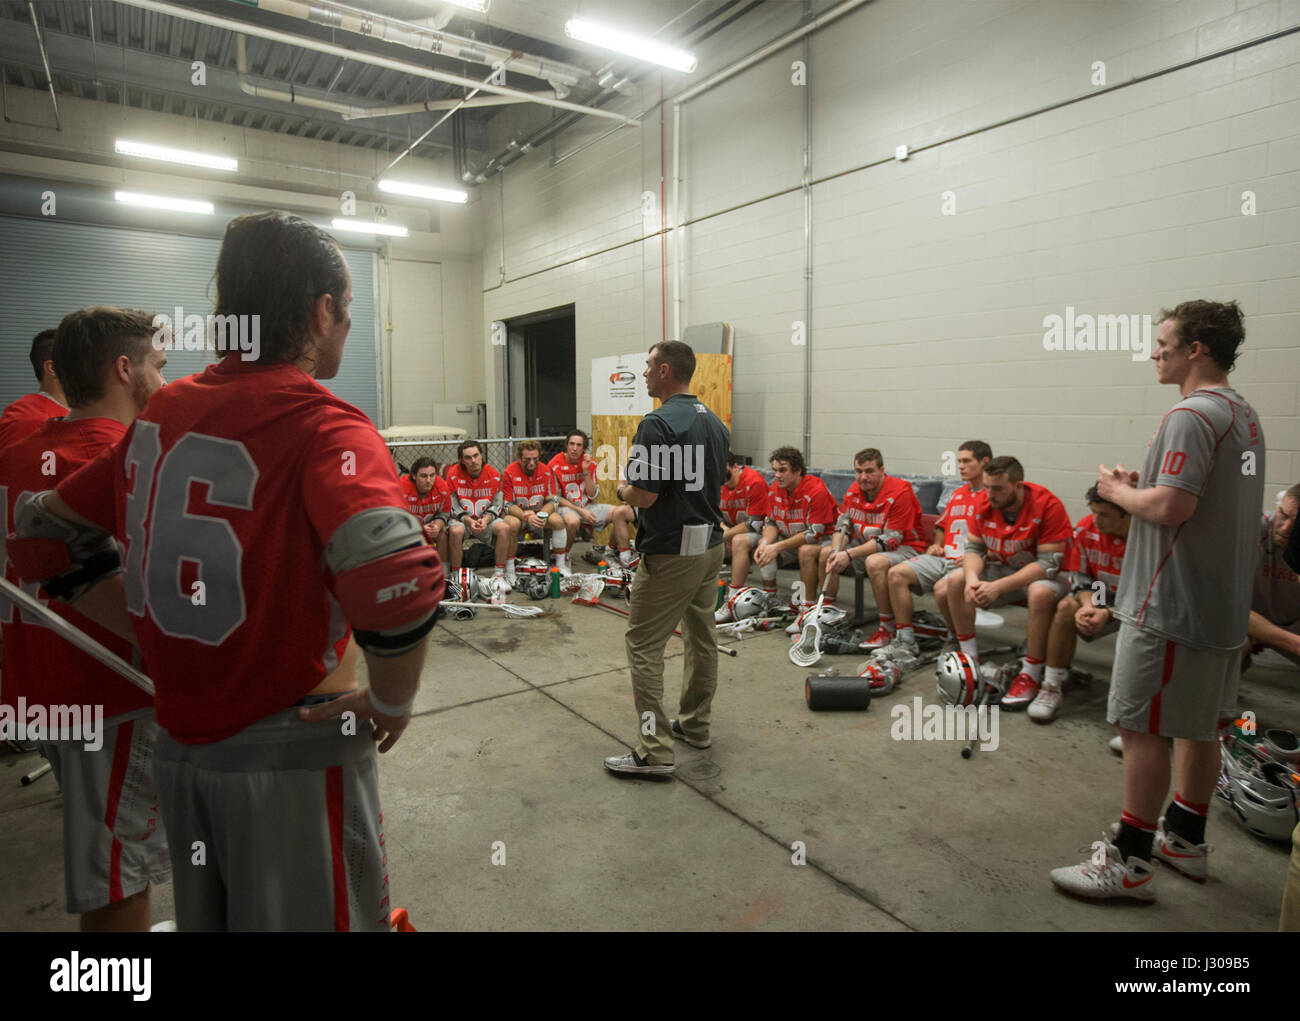 Head coach of the Ohio State lacrosse team speaking to players at halftime at a match against Rutgers Universiiy - Stock Image